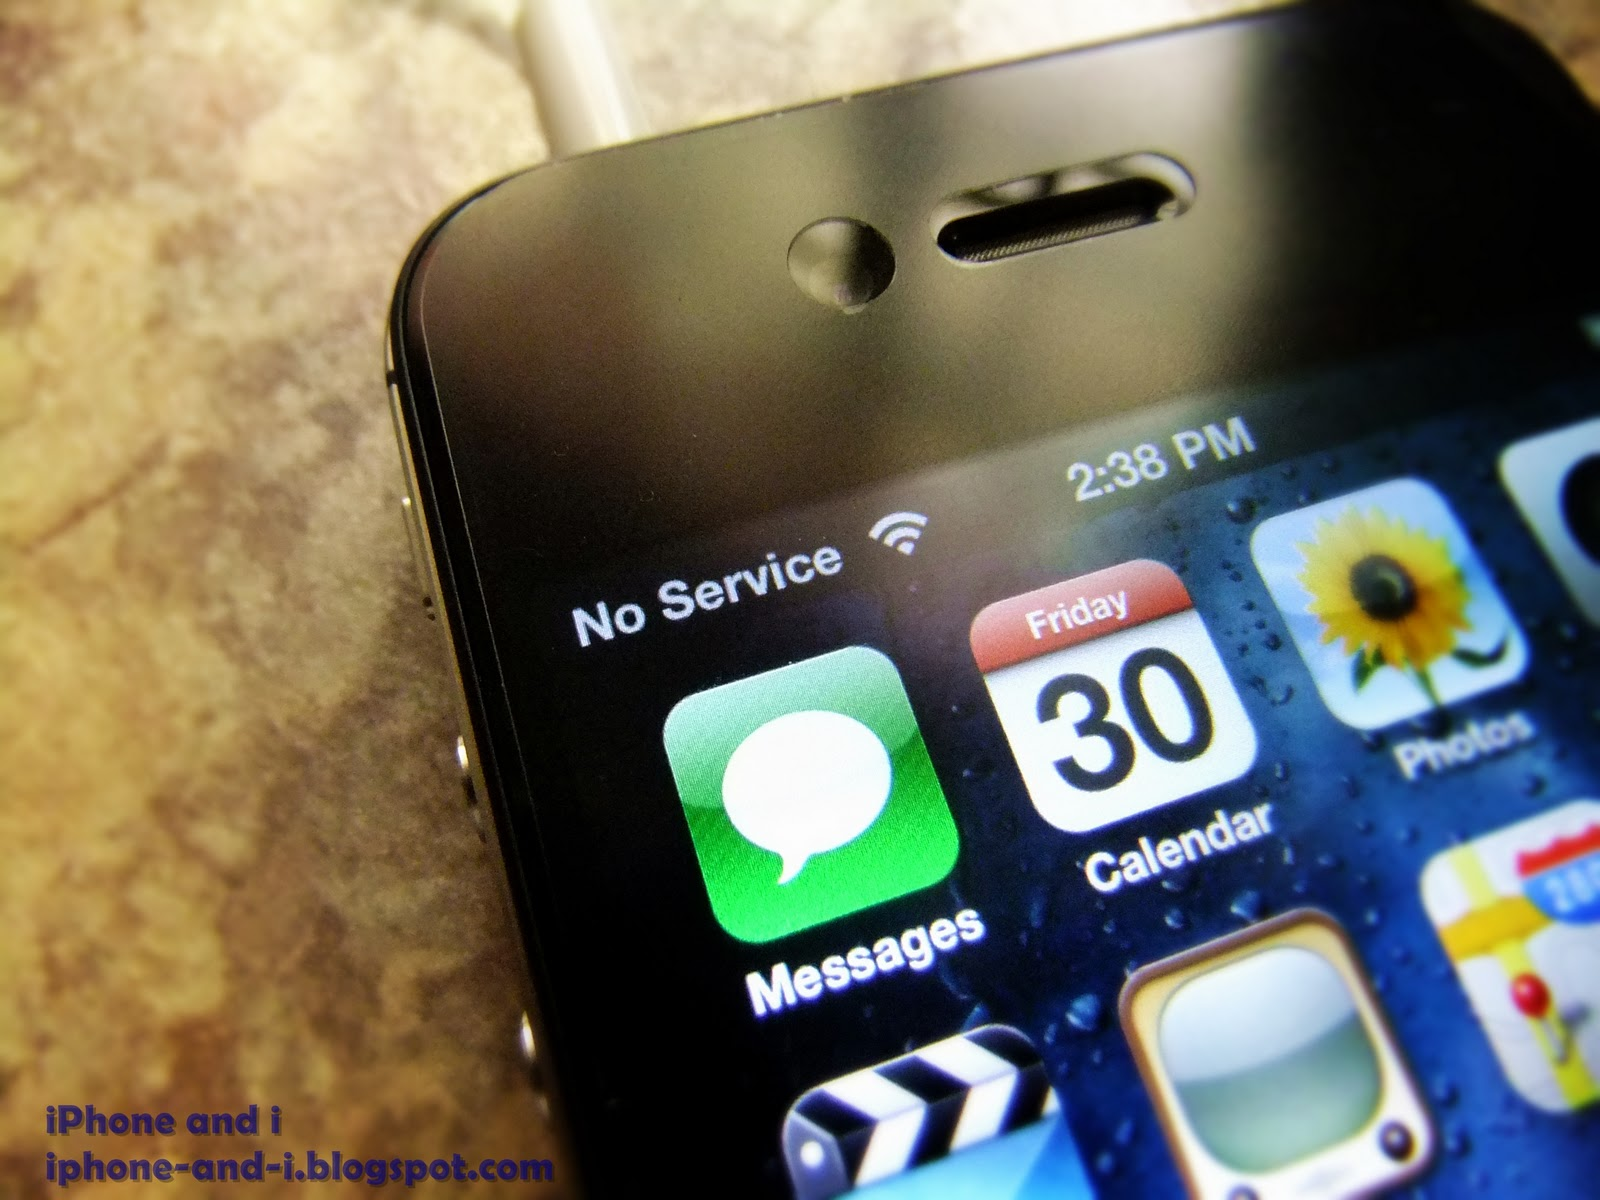 The iPhone 4S No Service problem where the cellular signal goes zero.